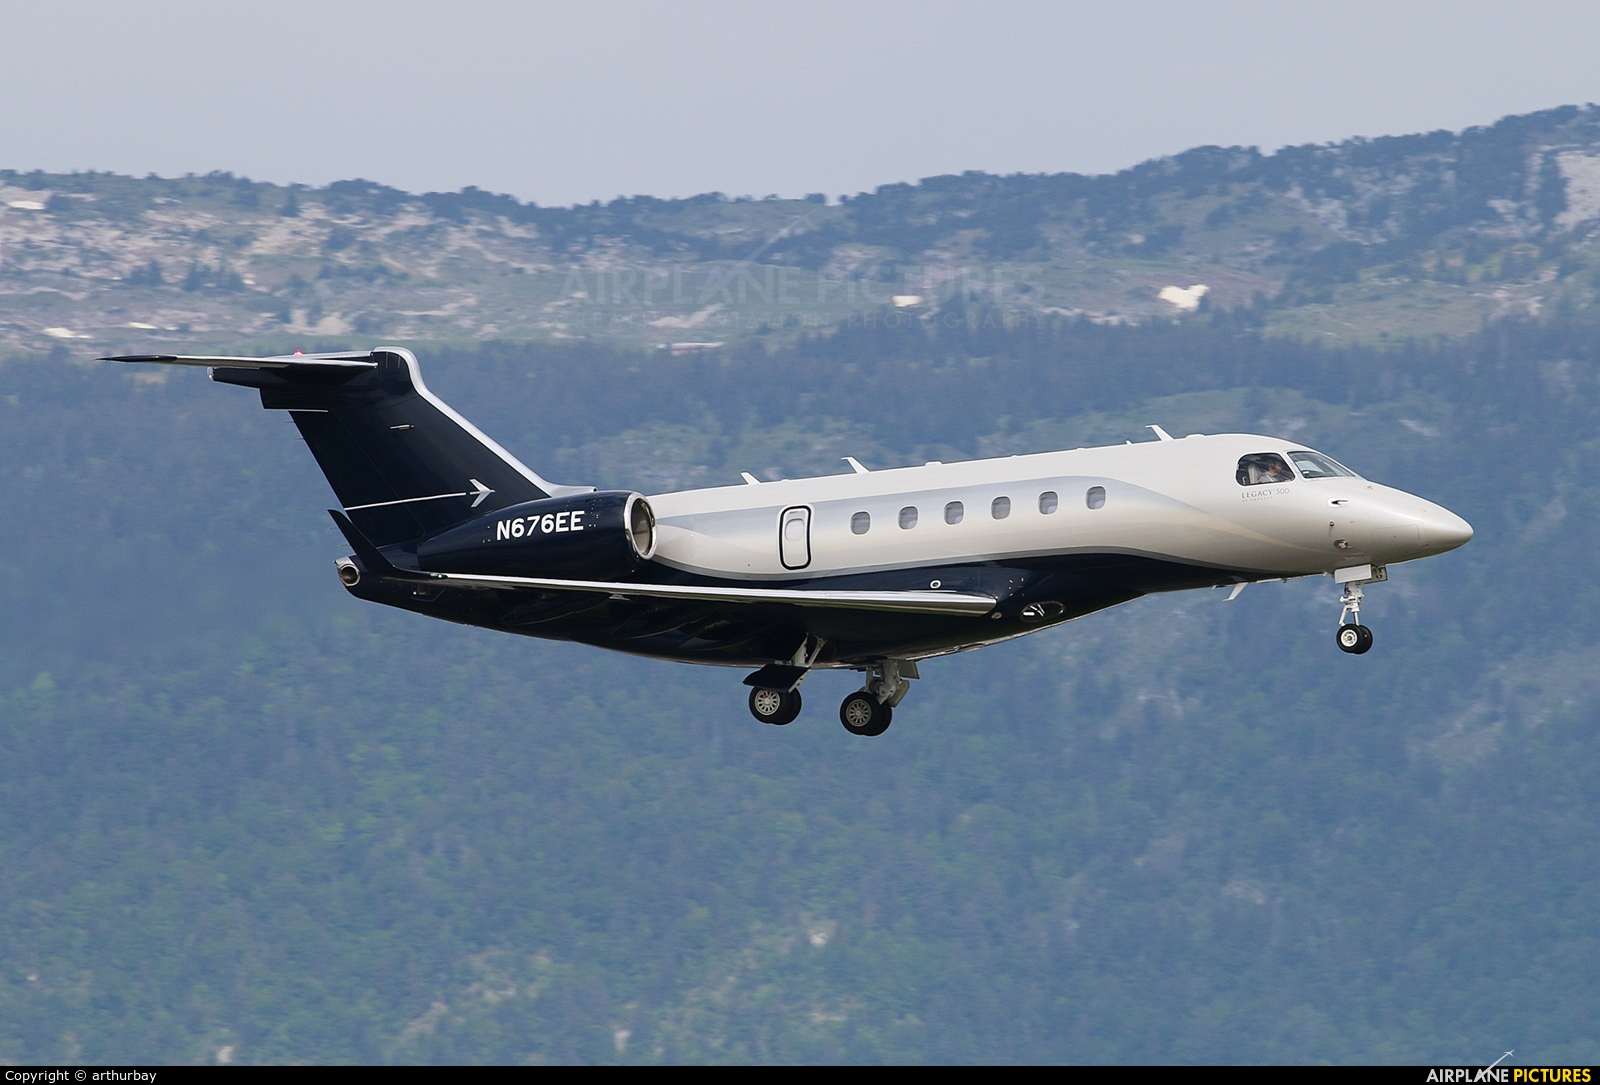 Embraer Executive Aircraft Inc N676EE aircraft at Geneva Intl